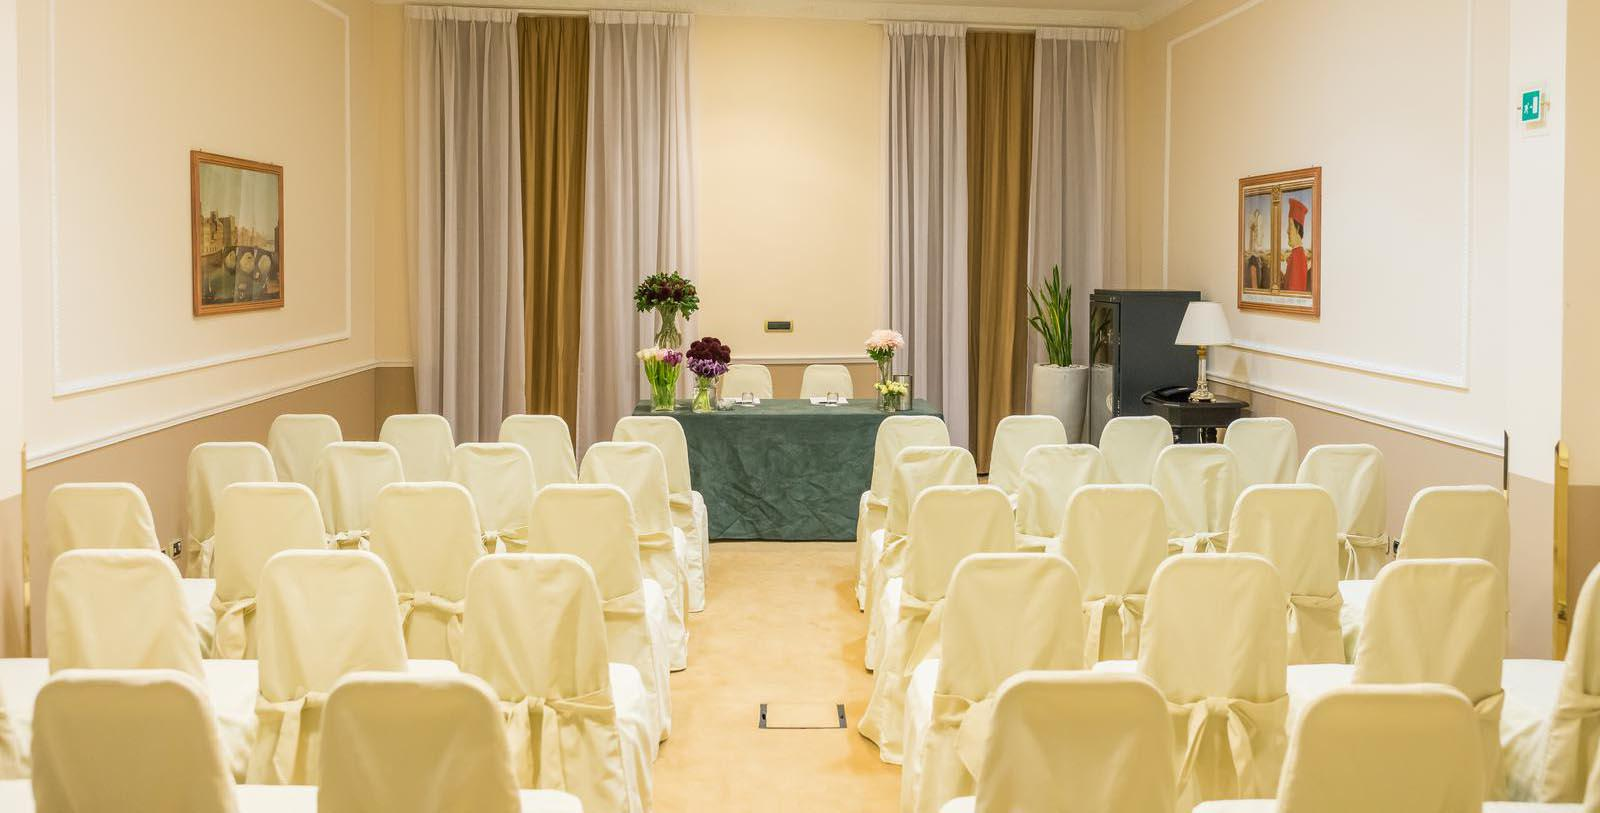 Image of meeting space classroom set up Bernini Palace Hotel, 1500, Member of Historic Hotels Worldwide, in Florence, Italy, Experience